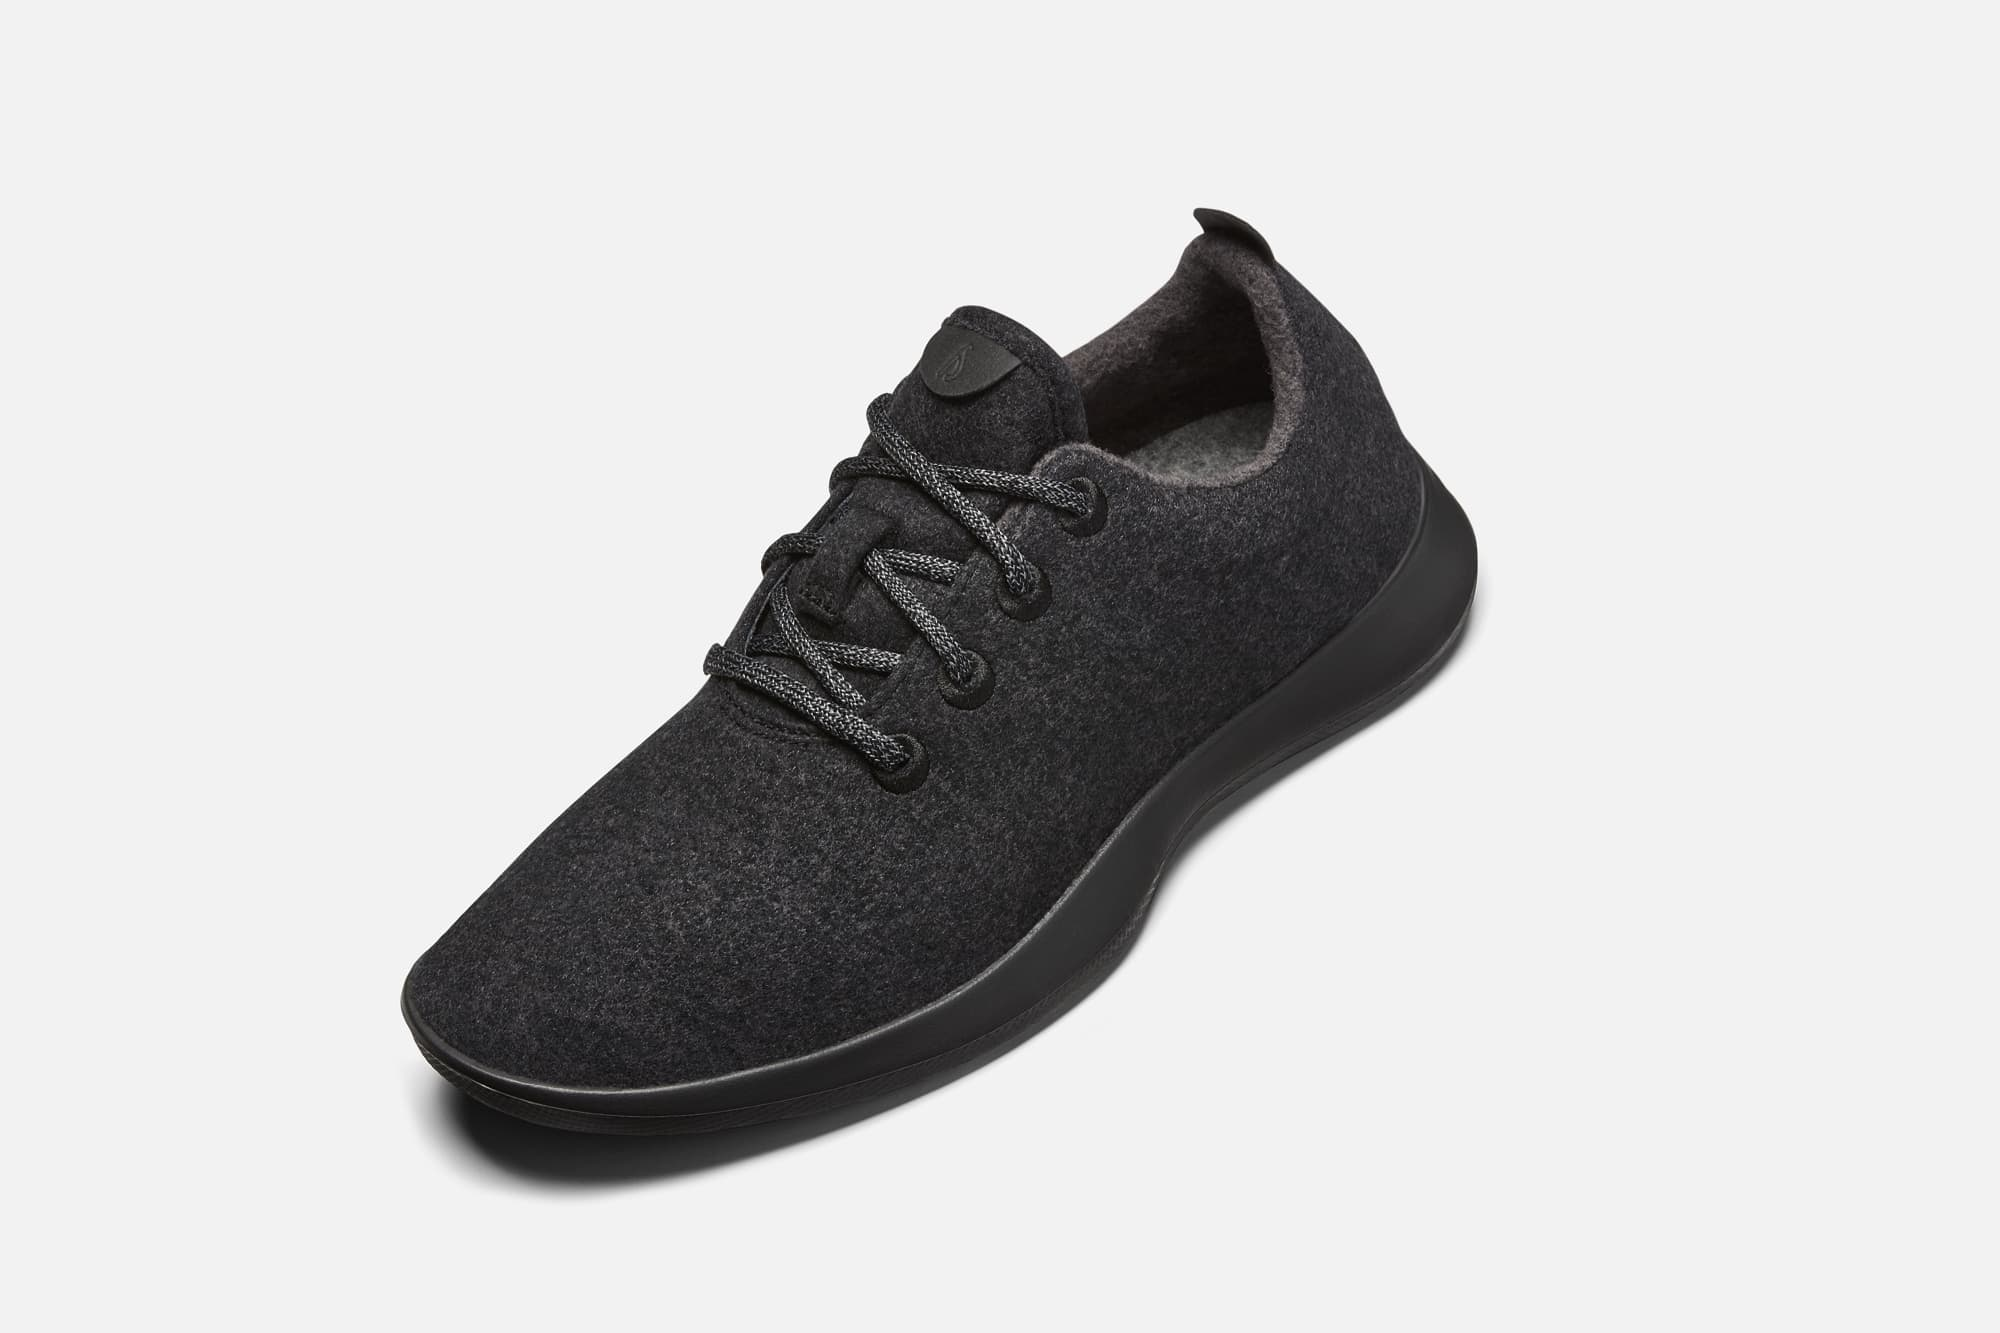 e95562172f1 Allbirds went from Silicon Valley staple to  1.4 billion shoe startup